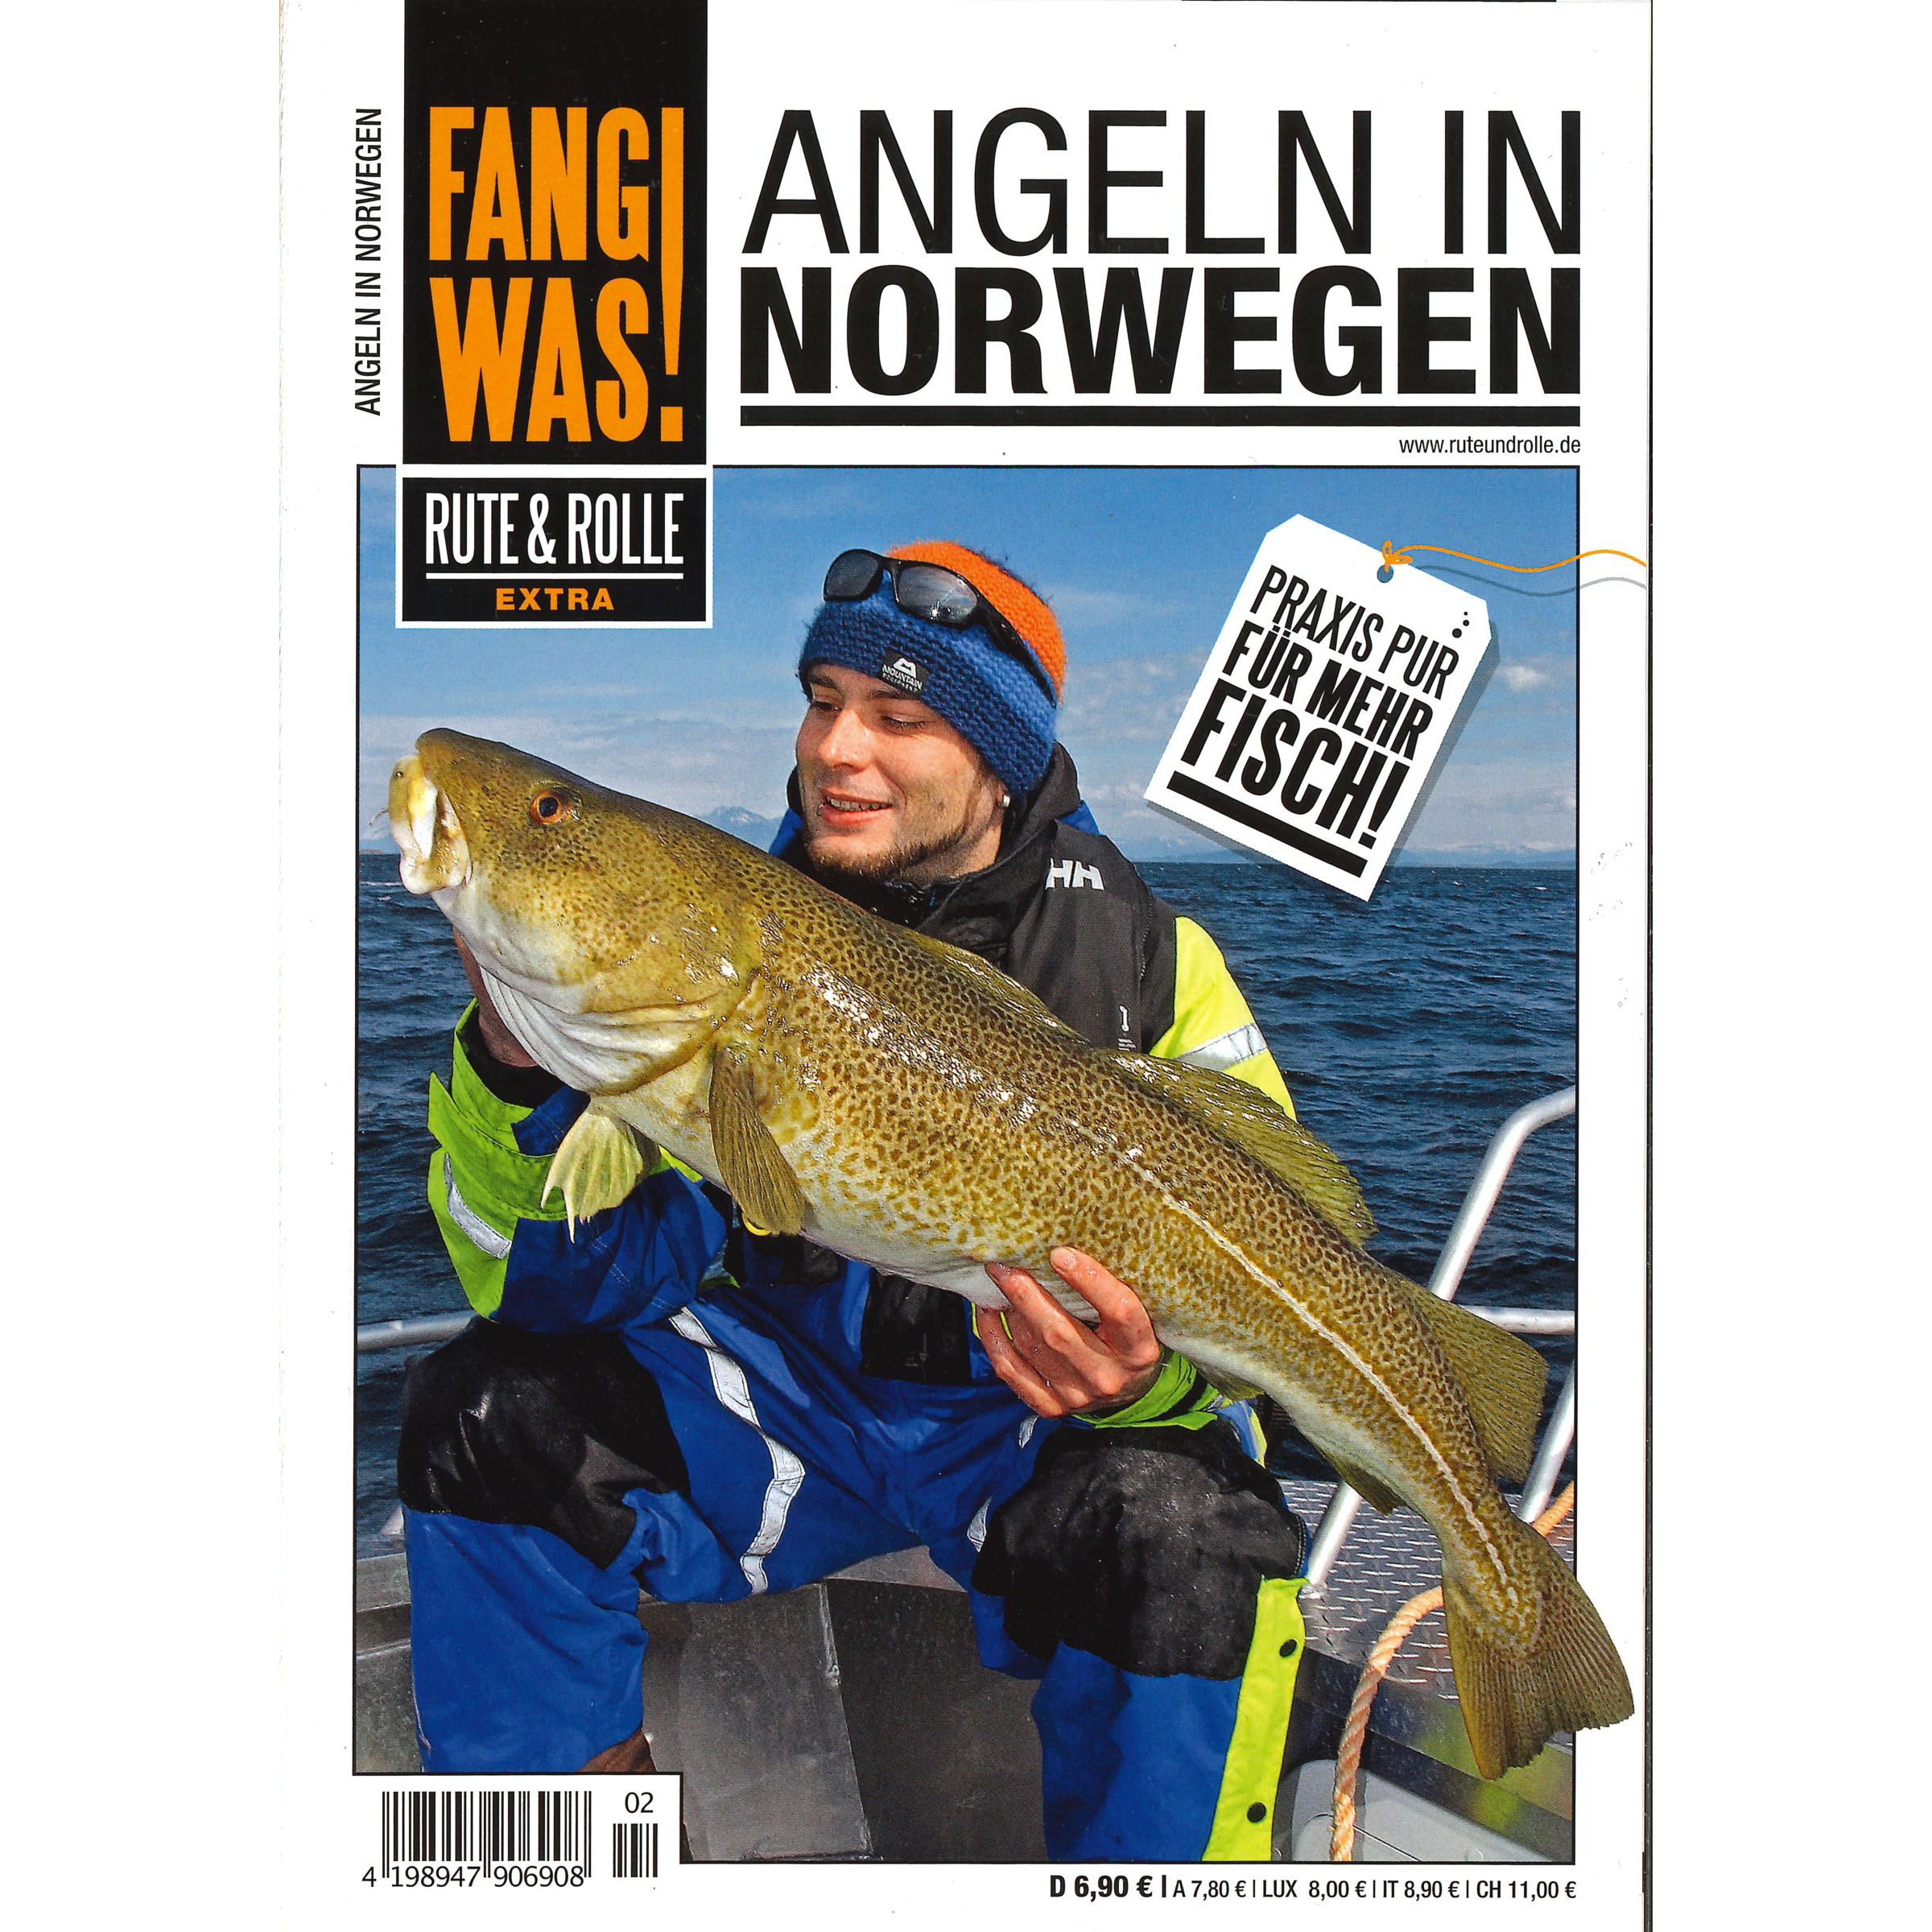 Angeln in Norwegen - Fang was!